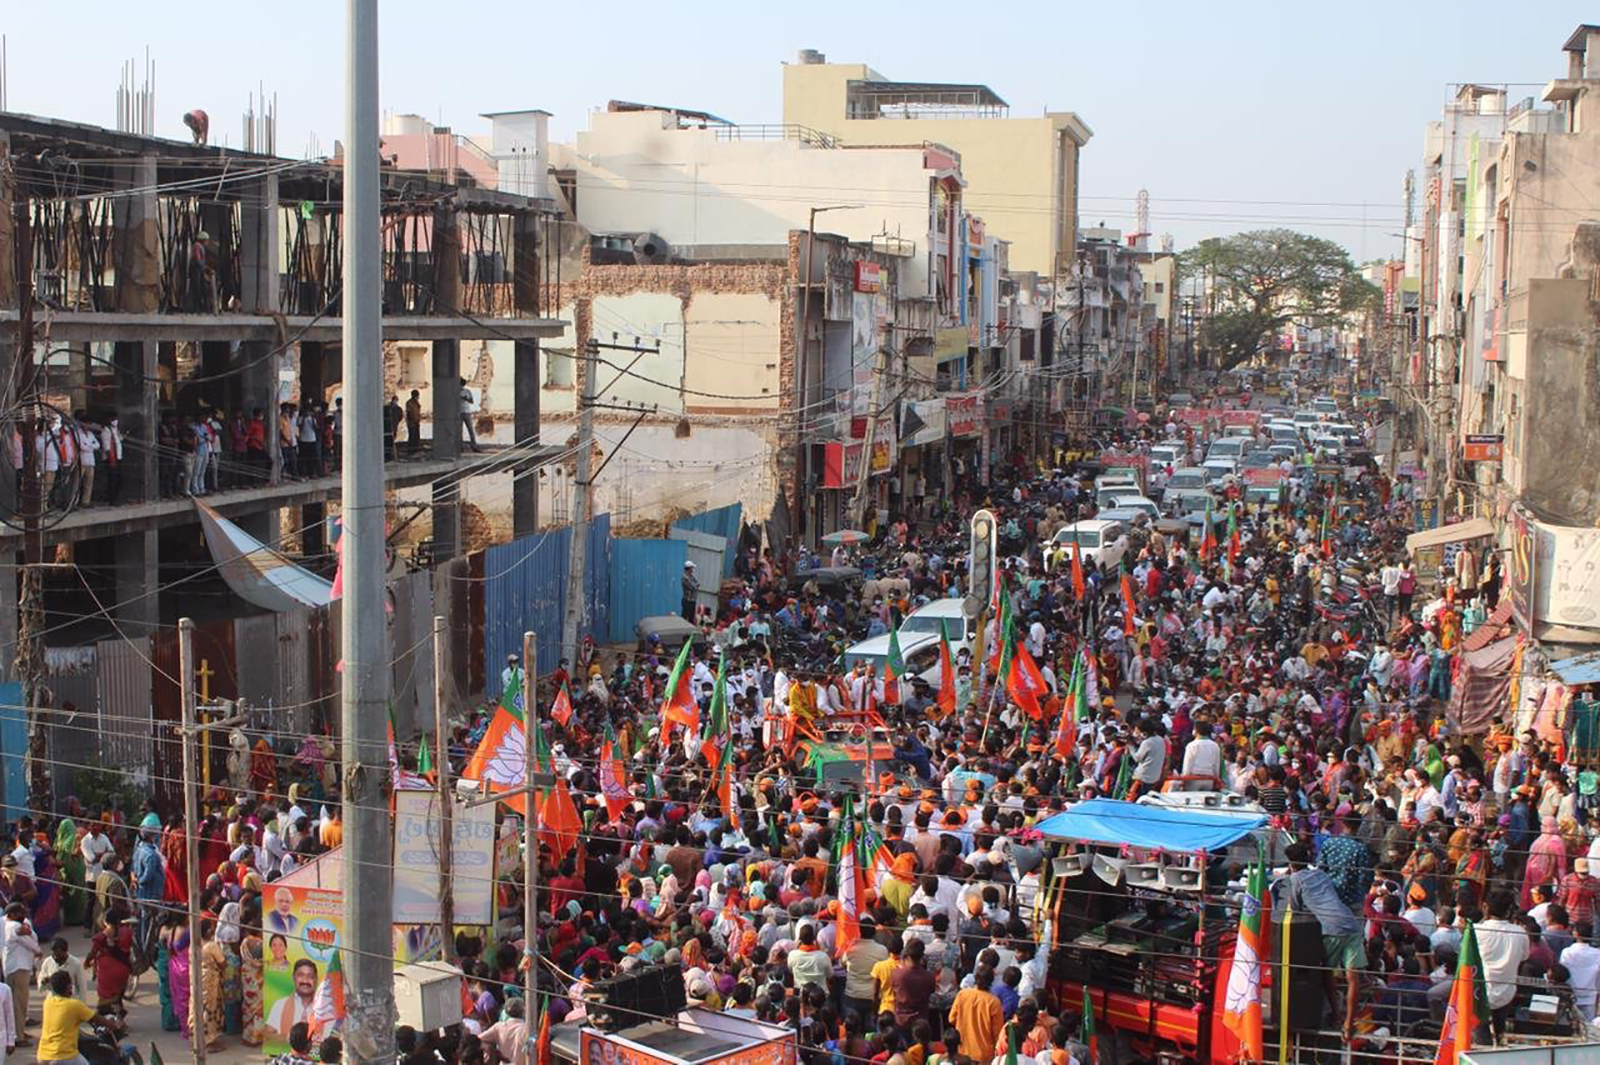 Major political rallies are described as super-spreaders of India's calamitous second wave of COVID infections. Courtesy CNN